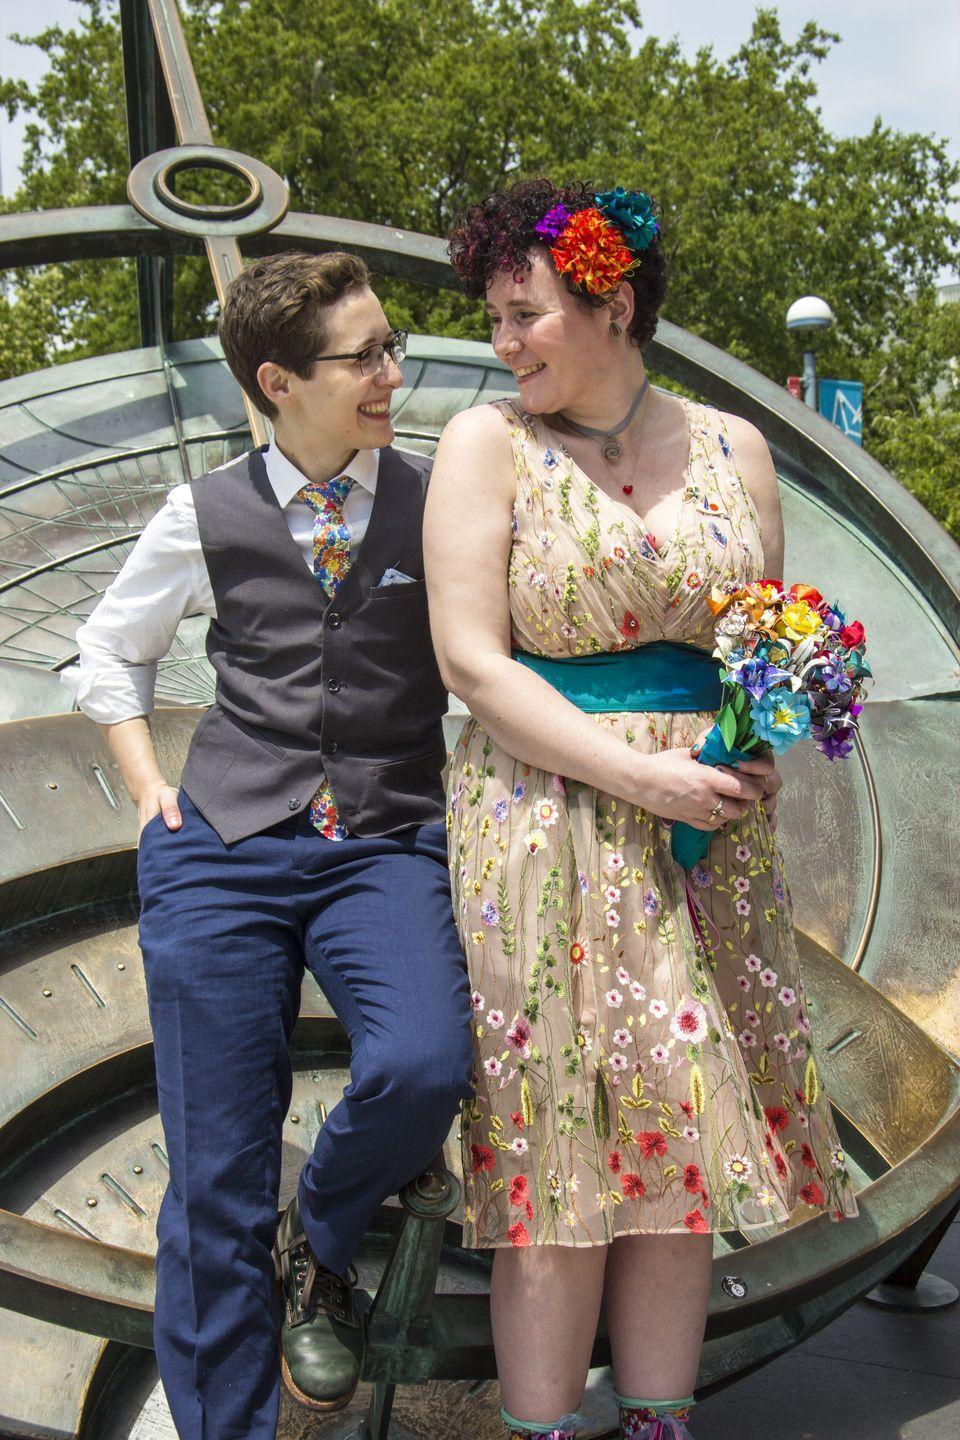 """<p>In June 2017, Jay and Tea invited their families to join them at the Hall of Science in Flushing, Queens where they exchanged vows under the Titan II. The flowers in Tea's hair were made out of the letters they wrote each other during their <a href=""""https://www.oprahmag.com/life/relationships-love/a27628635/long-distance-relationship-tips/"""" rel=""""nofollow noopener"""" target=""""_blank"""" data-ylk=""""slk:long-distance relationship"""" class=""""link rapid-noclick-resp"""">long-distance relationship</a>.</p>"""